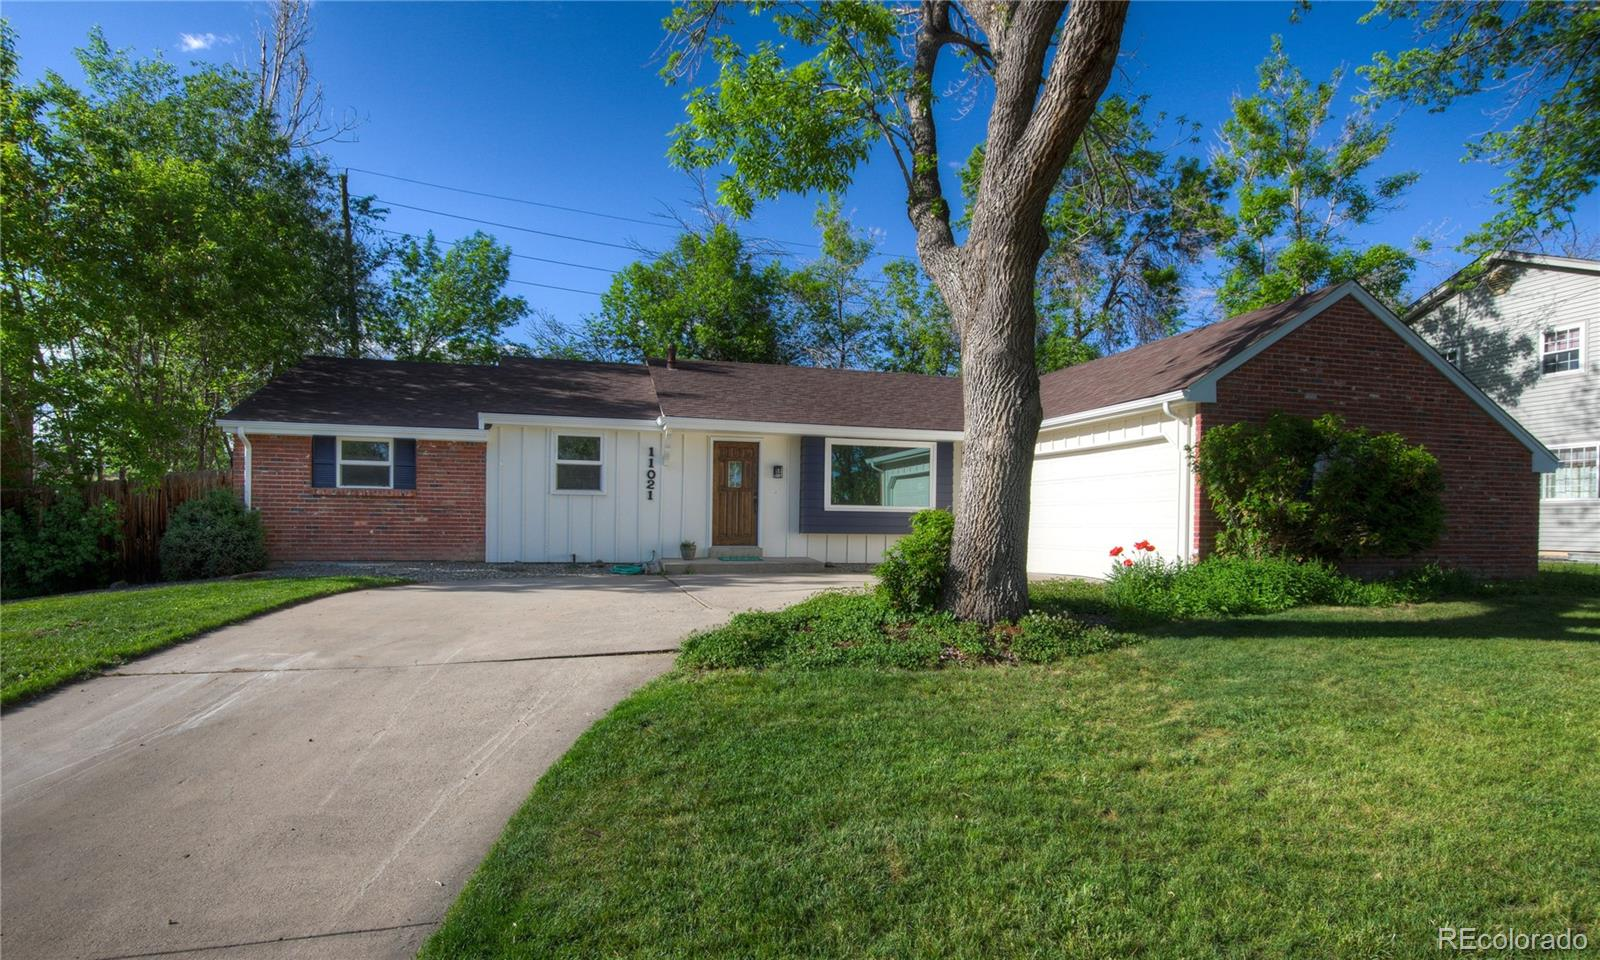 11021 W 71st Place Property Photo - Arvada, CO real estate listing